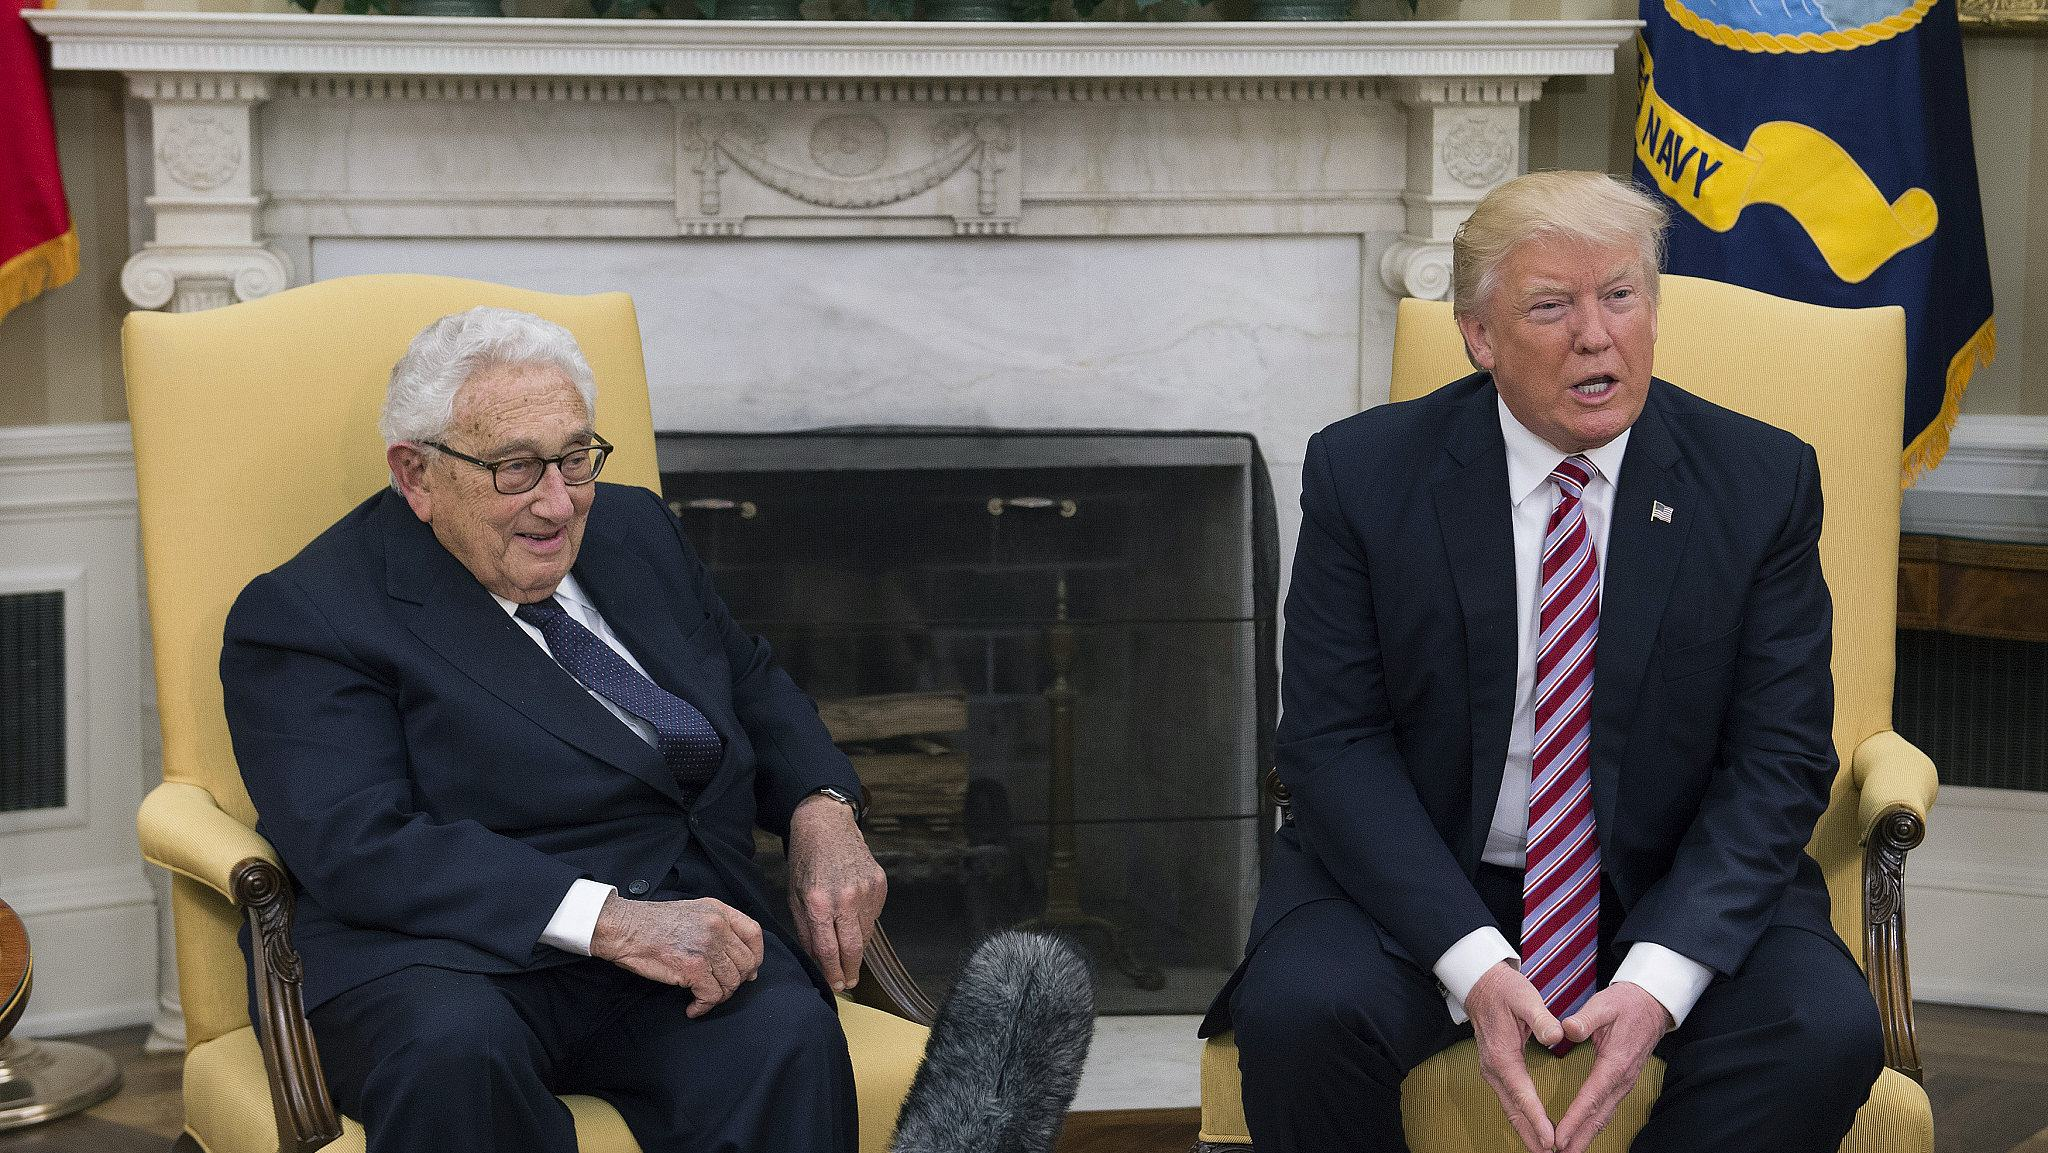 Trump should learn from Kissinger's diplomacy